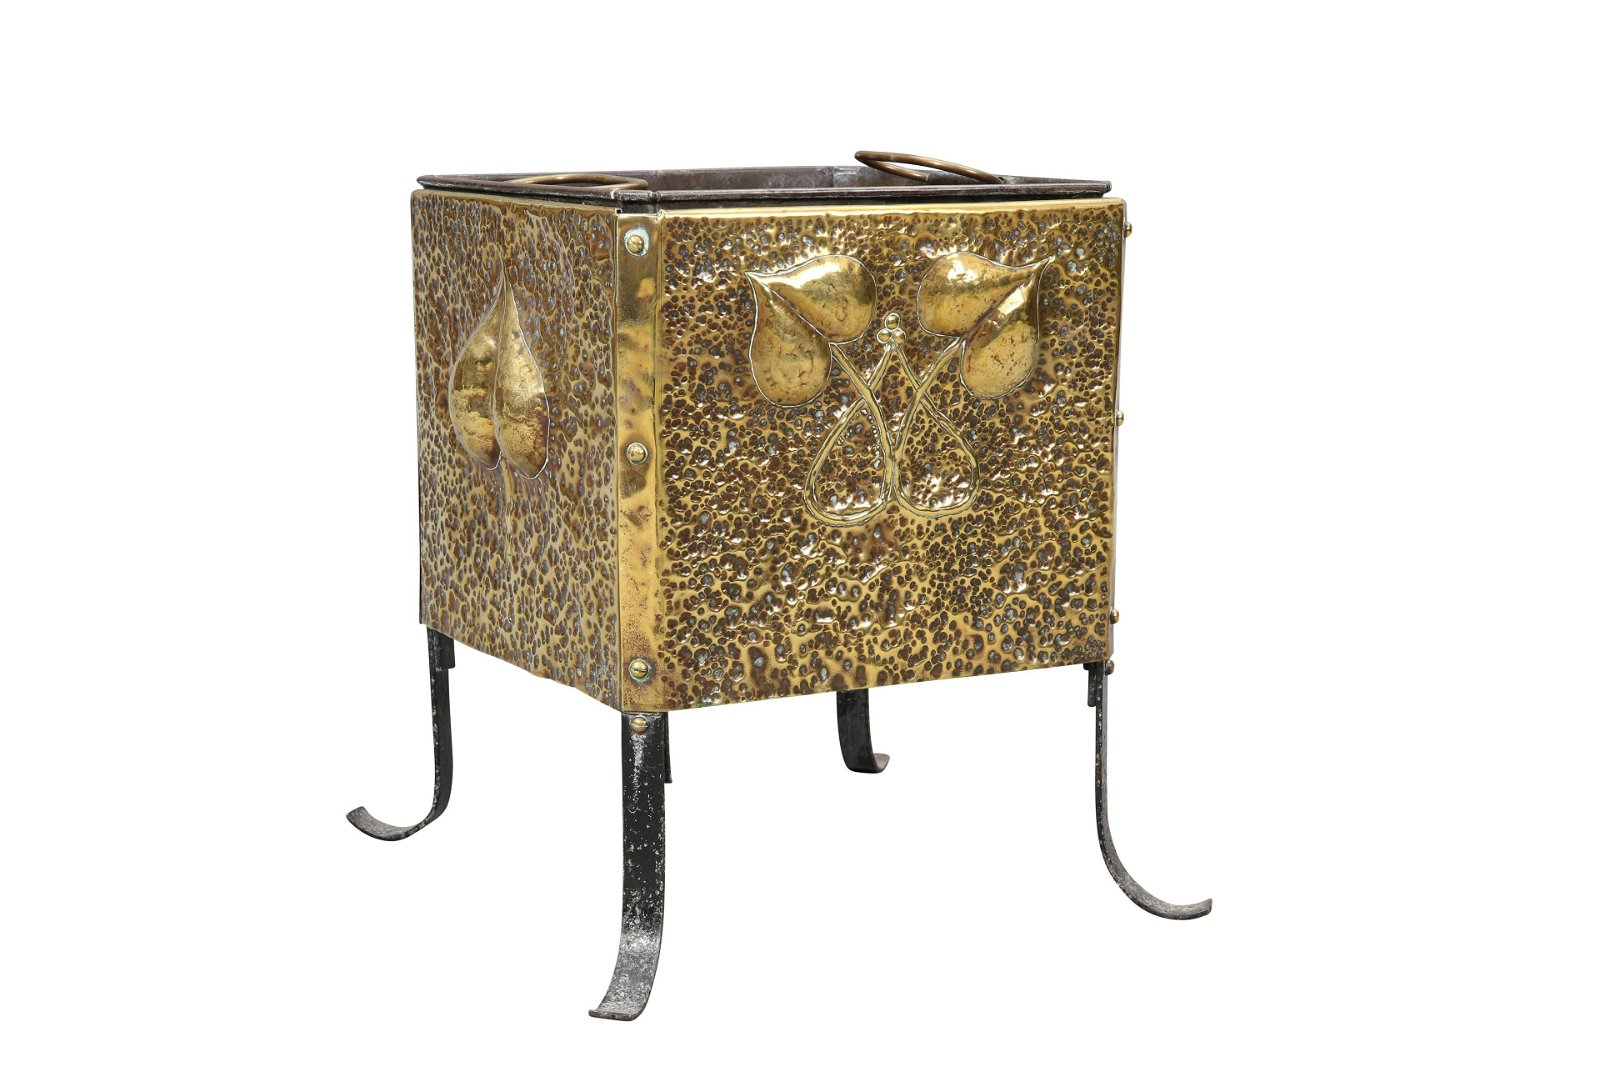 AN ARTS AND CRAFTS BRASS COAL BOX, square with riveted